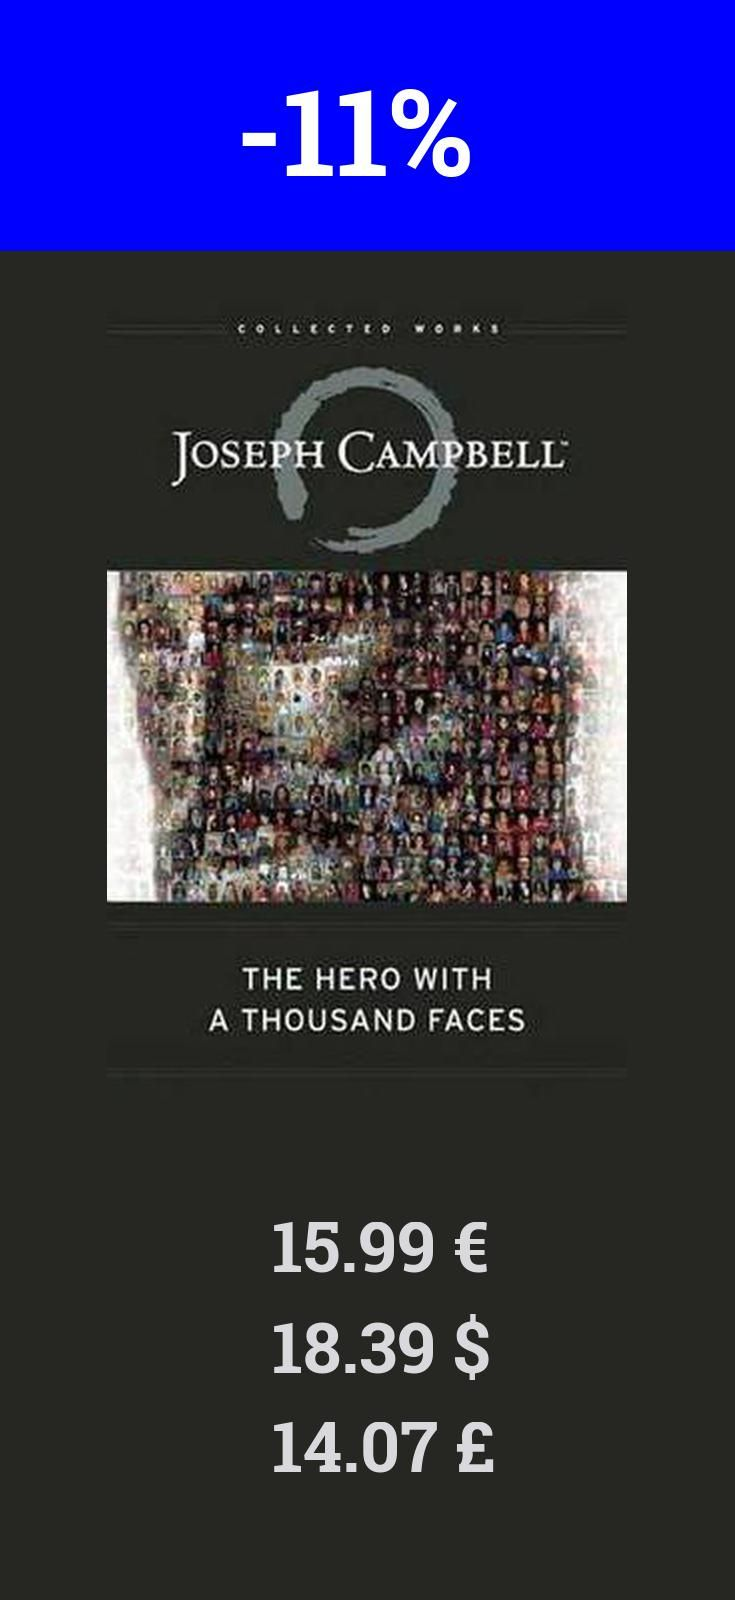 """You can purchase The Hero with a Thousand Faces for 11% less right now! I have returned to no other book more often since leaving college than this one, and every time I discover new insight into the human journey. Every generation will find in """"Hero"""" wisdom for the ages. Bill Moyers In the three decades since I discovered """"The Hero with a Thousand Faces,"""" it has continued to fascinate and inspire me. Joseph Campbell peers through centuries and shows us that we are all connected by a basic…"""